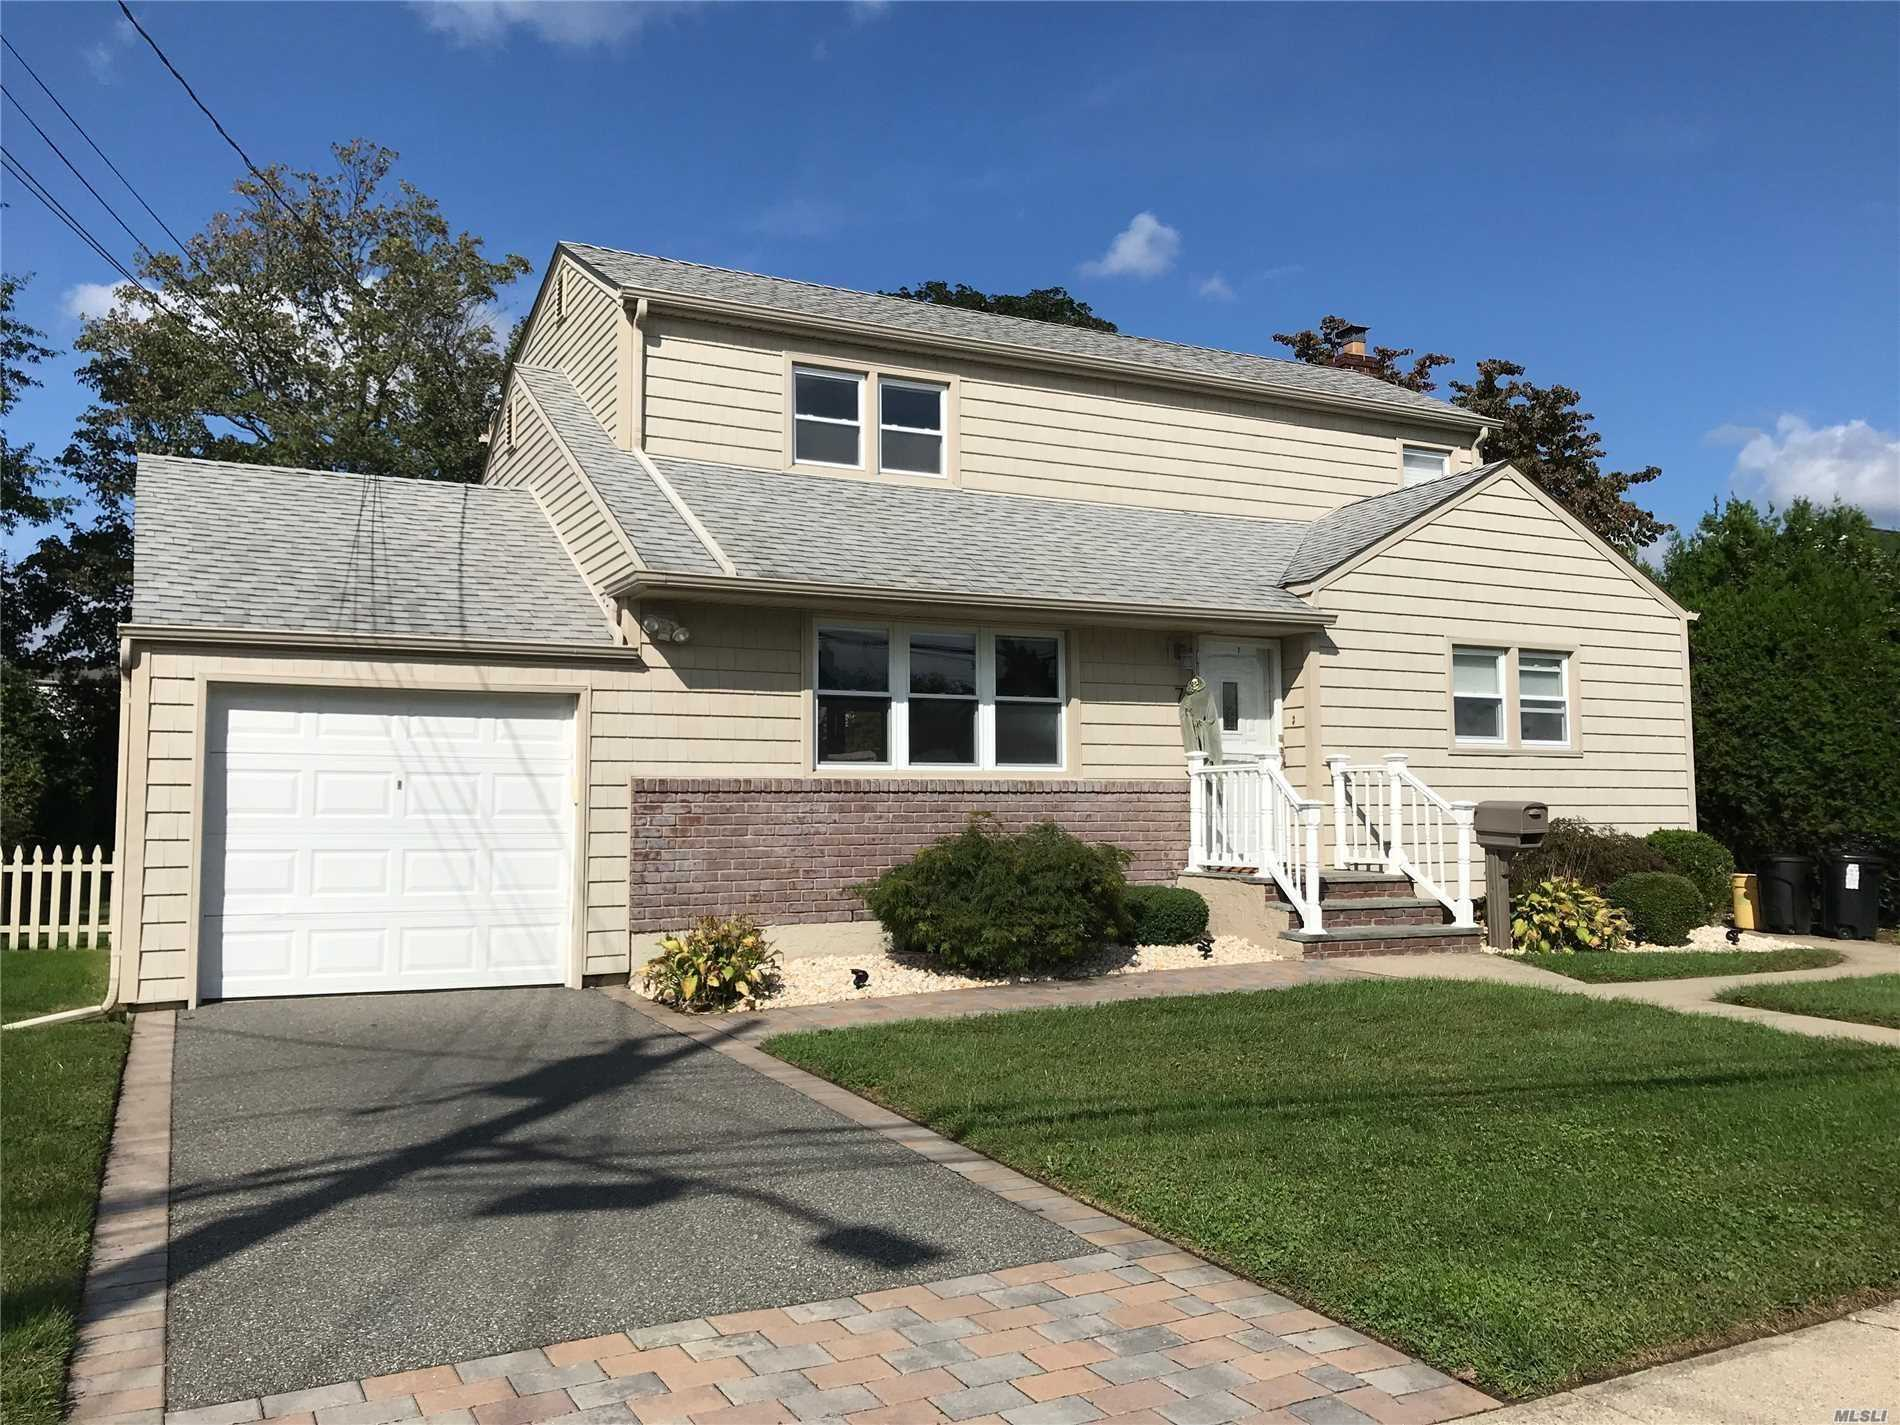 Hicksville. Mint Updated Home In The Heart Of Hicksville Close To All Major Highways, Shopping And Fine Dining. Big Fenced In Backyard. Must See.